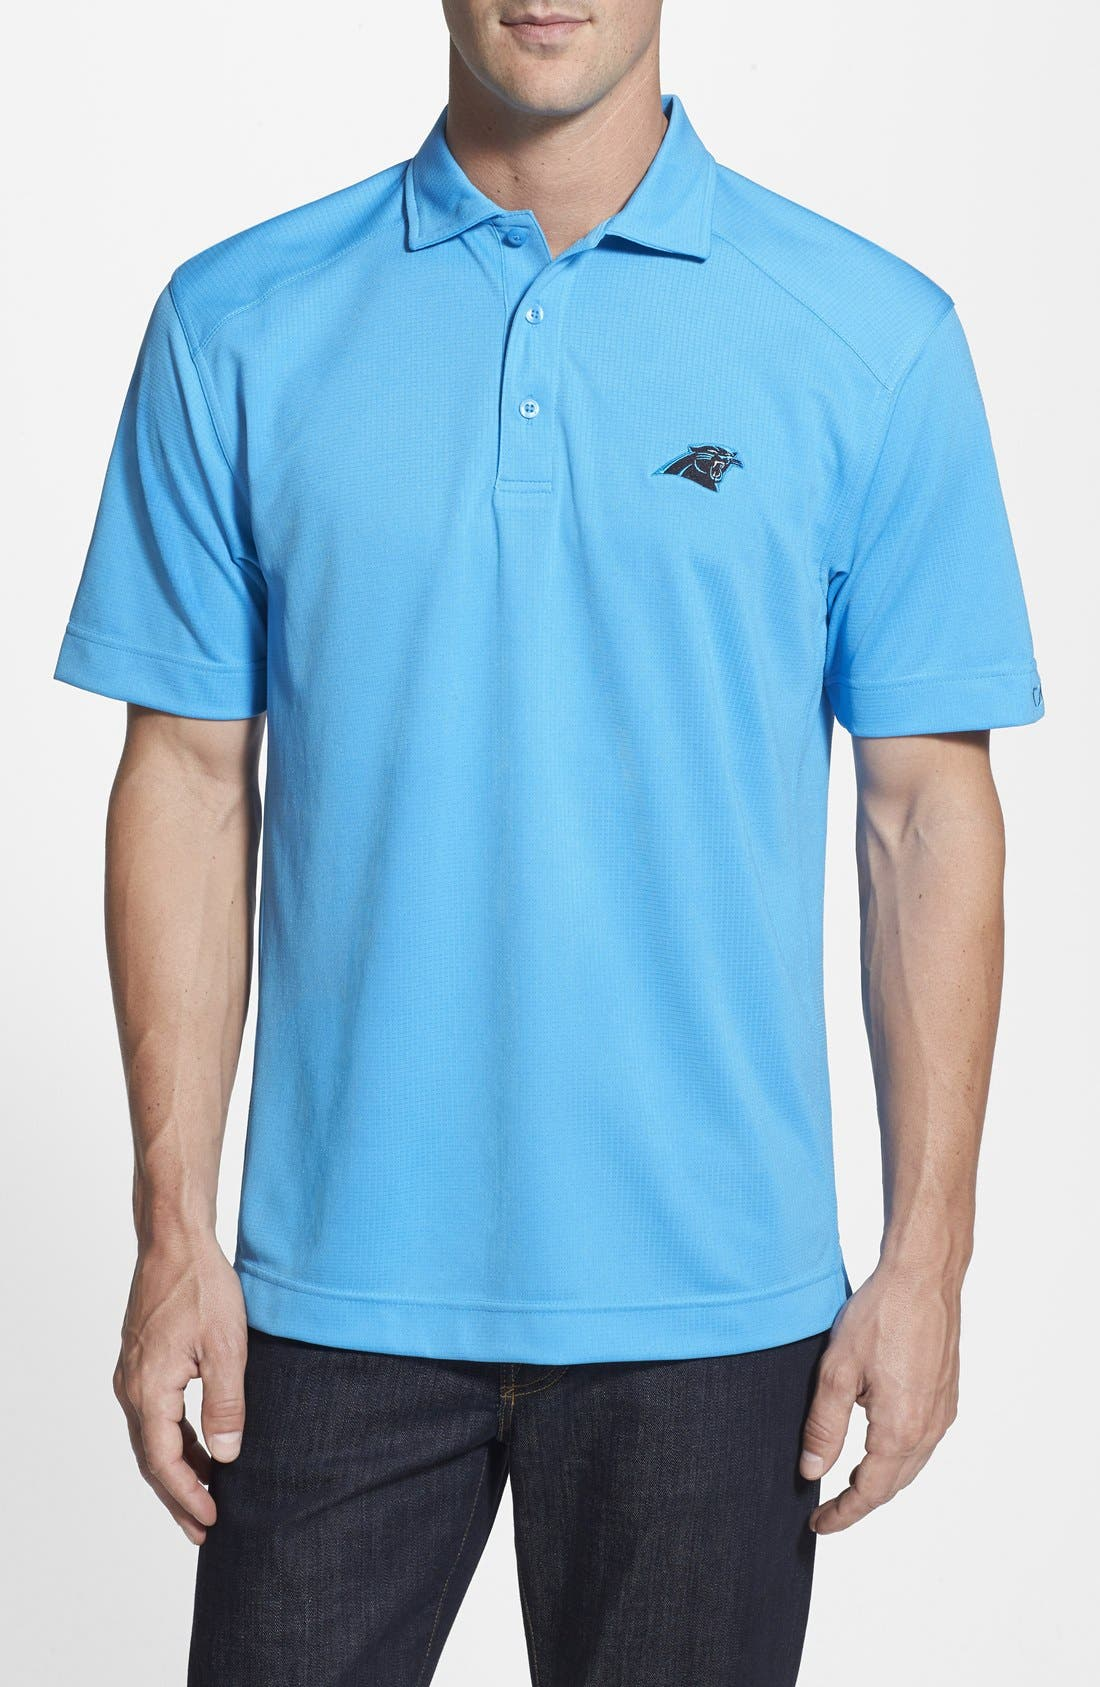 Main Image - Cutter & Buck Carolina Panthers - Genre DryTec Moisture Wicking Polo